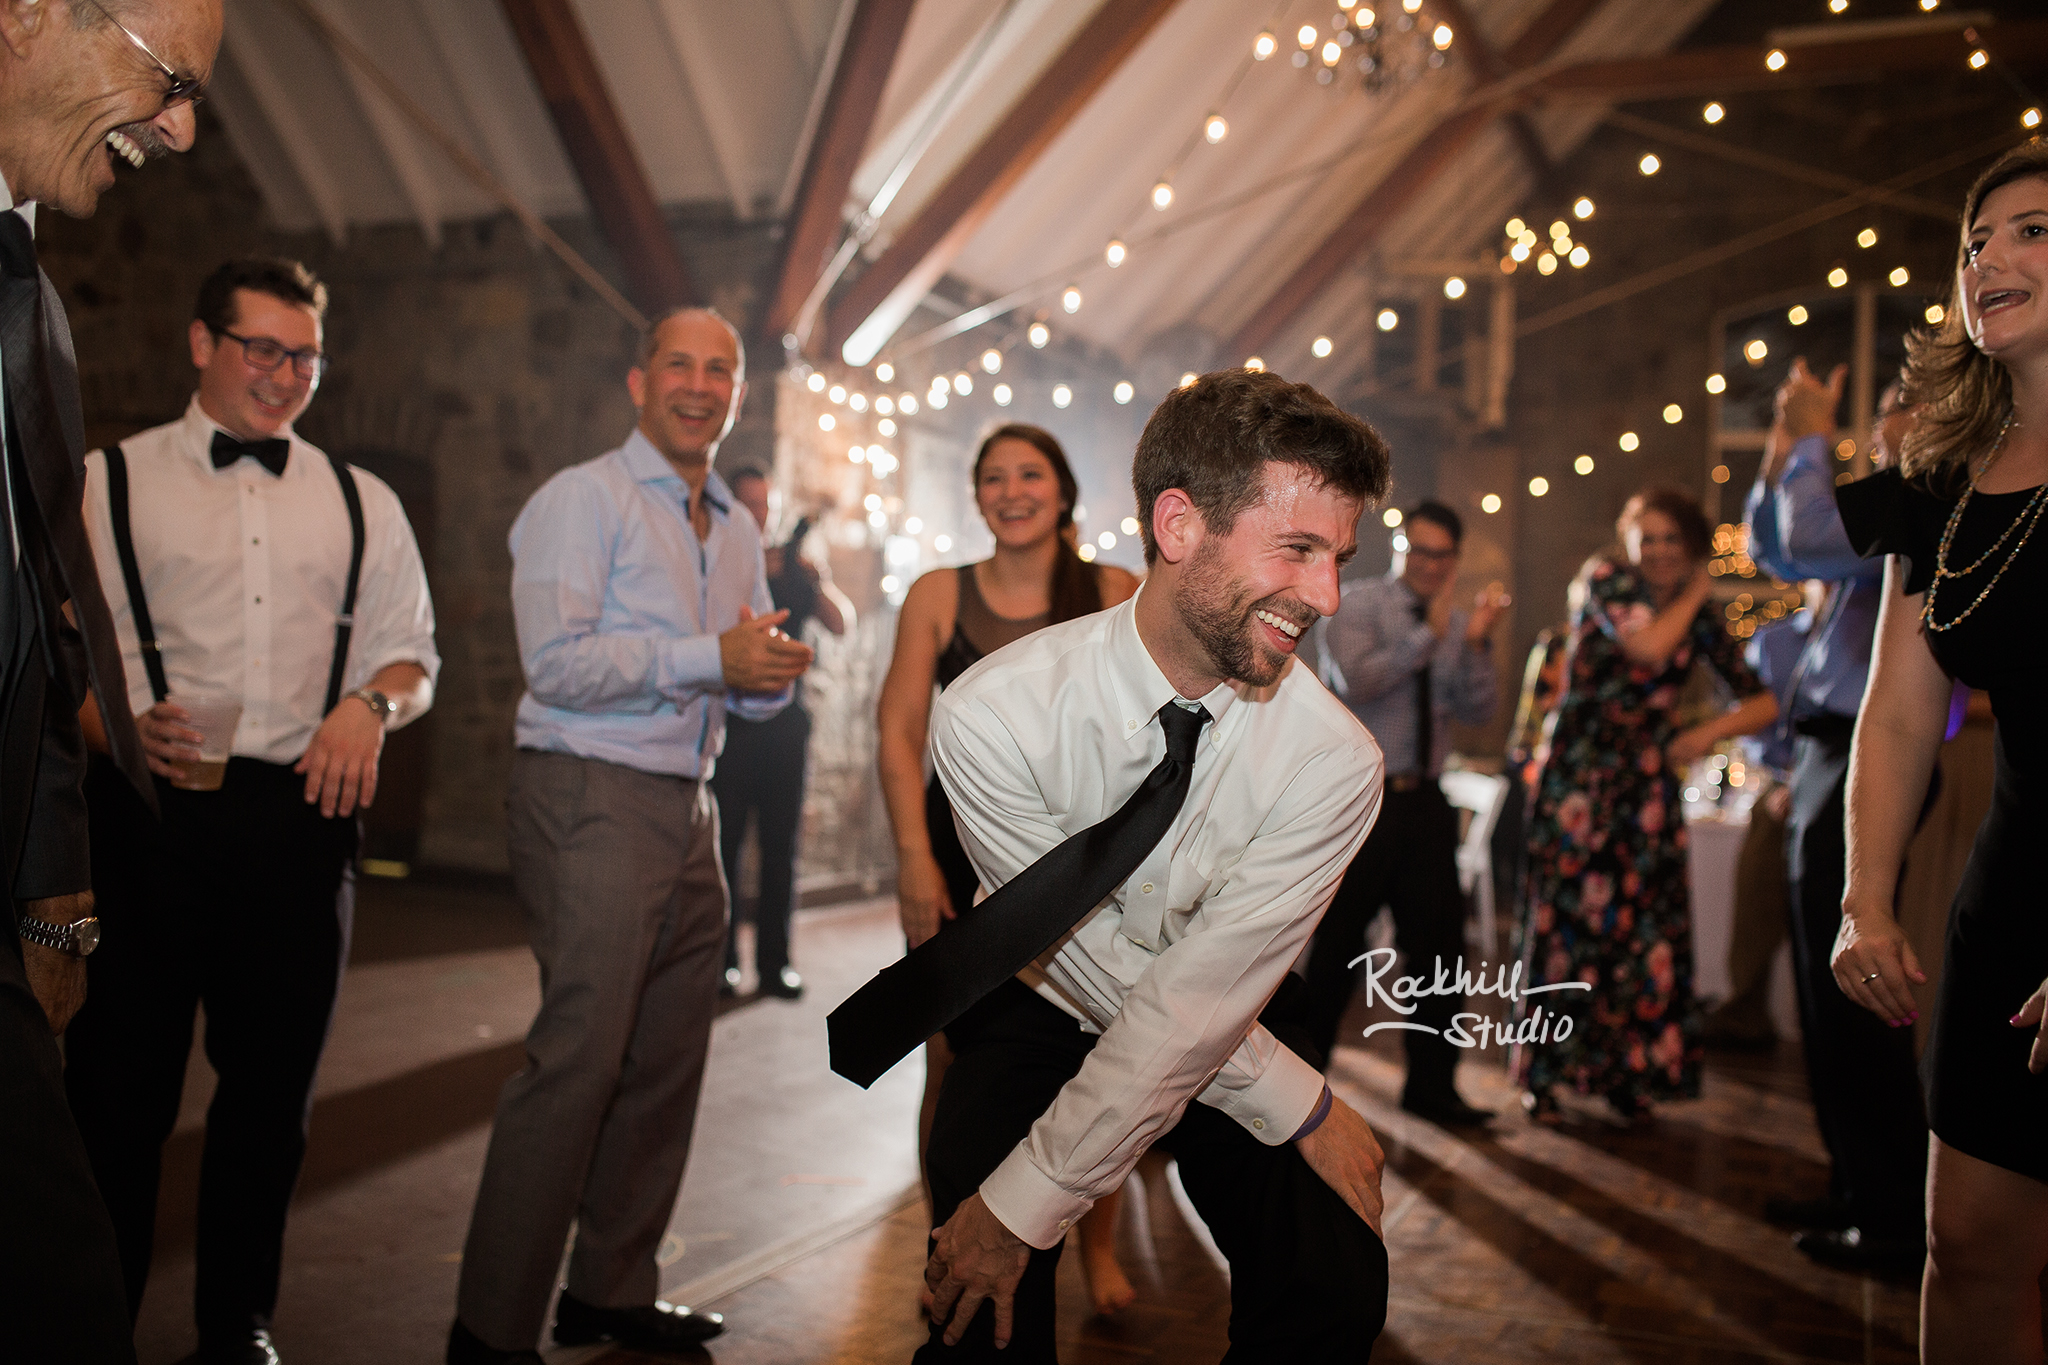 traverse city wedding photography reception guests dancing